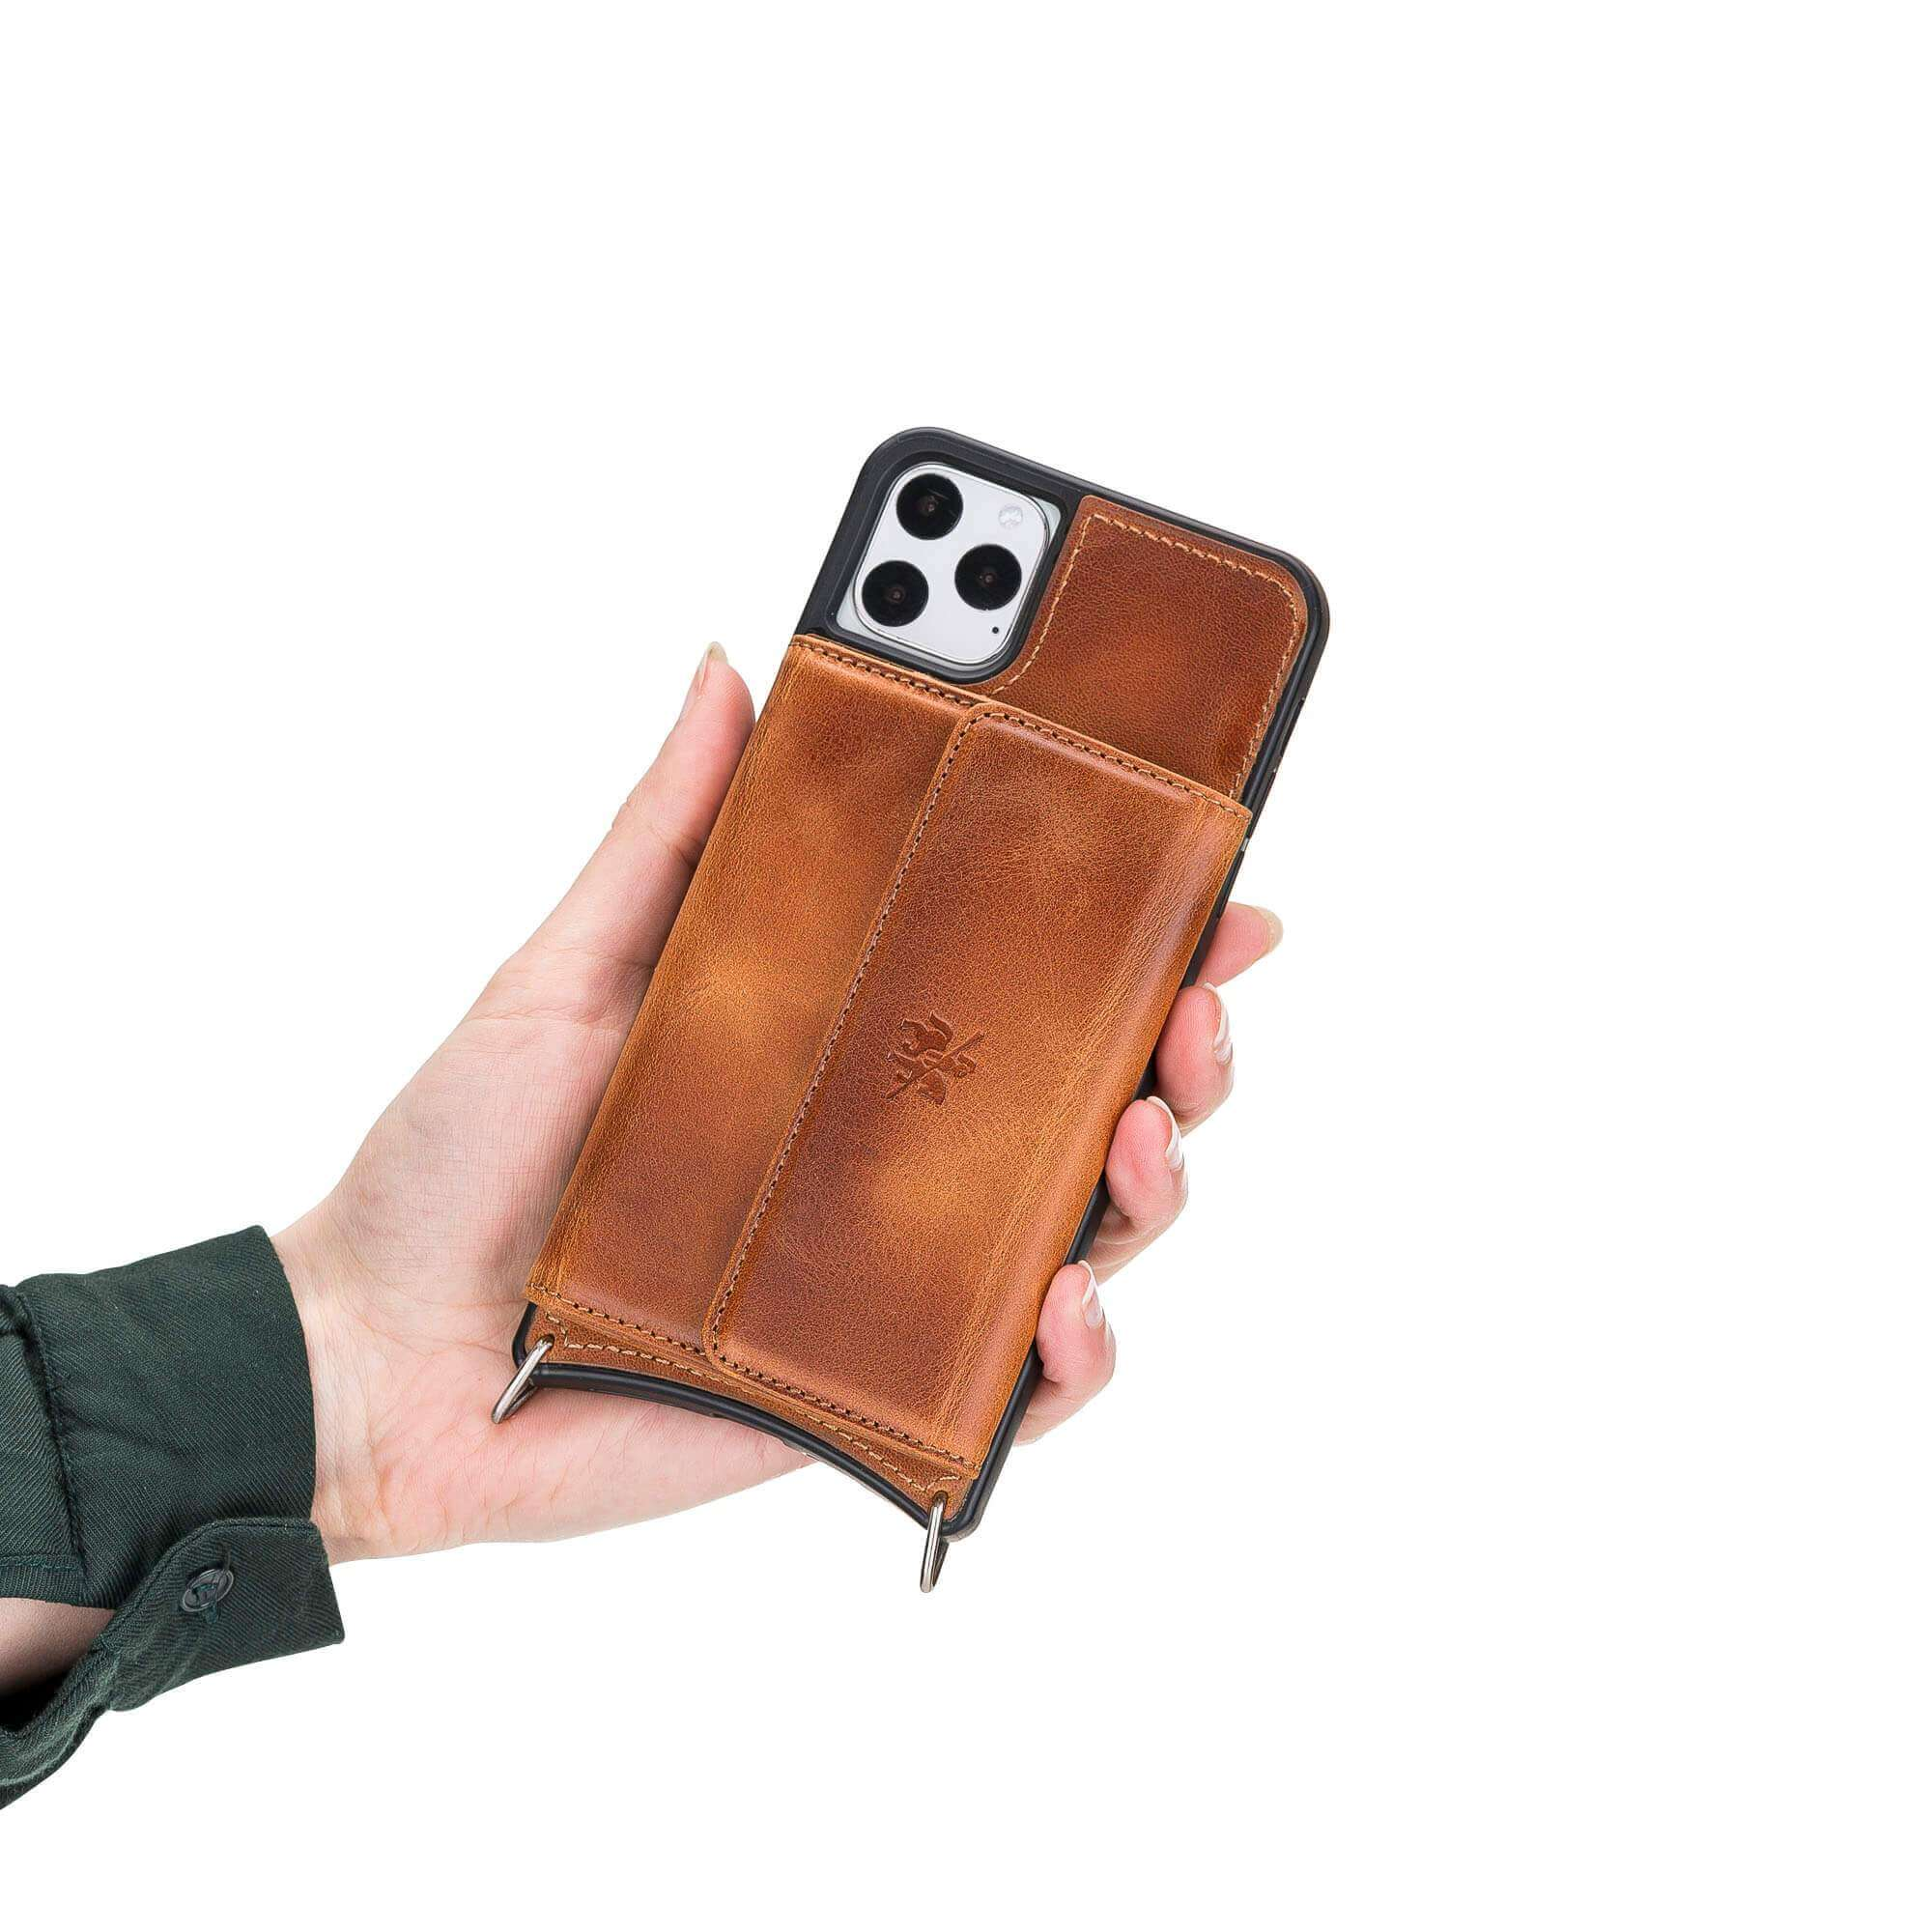 Choosing the Right Phone Case